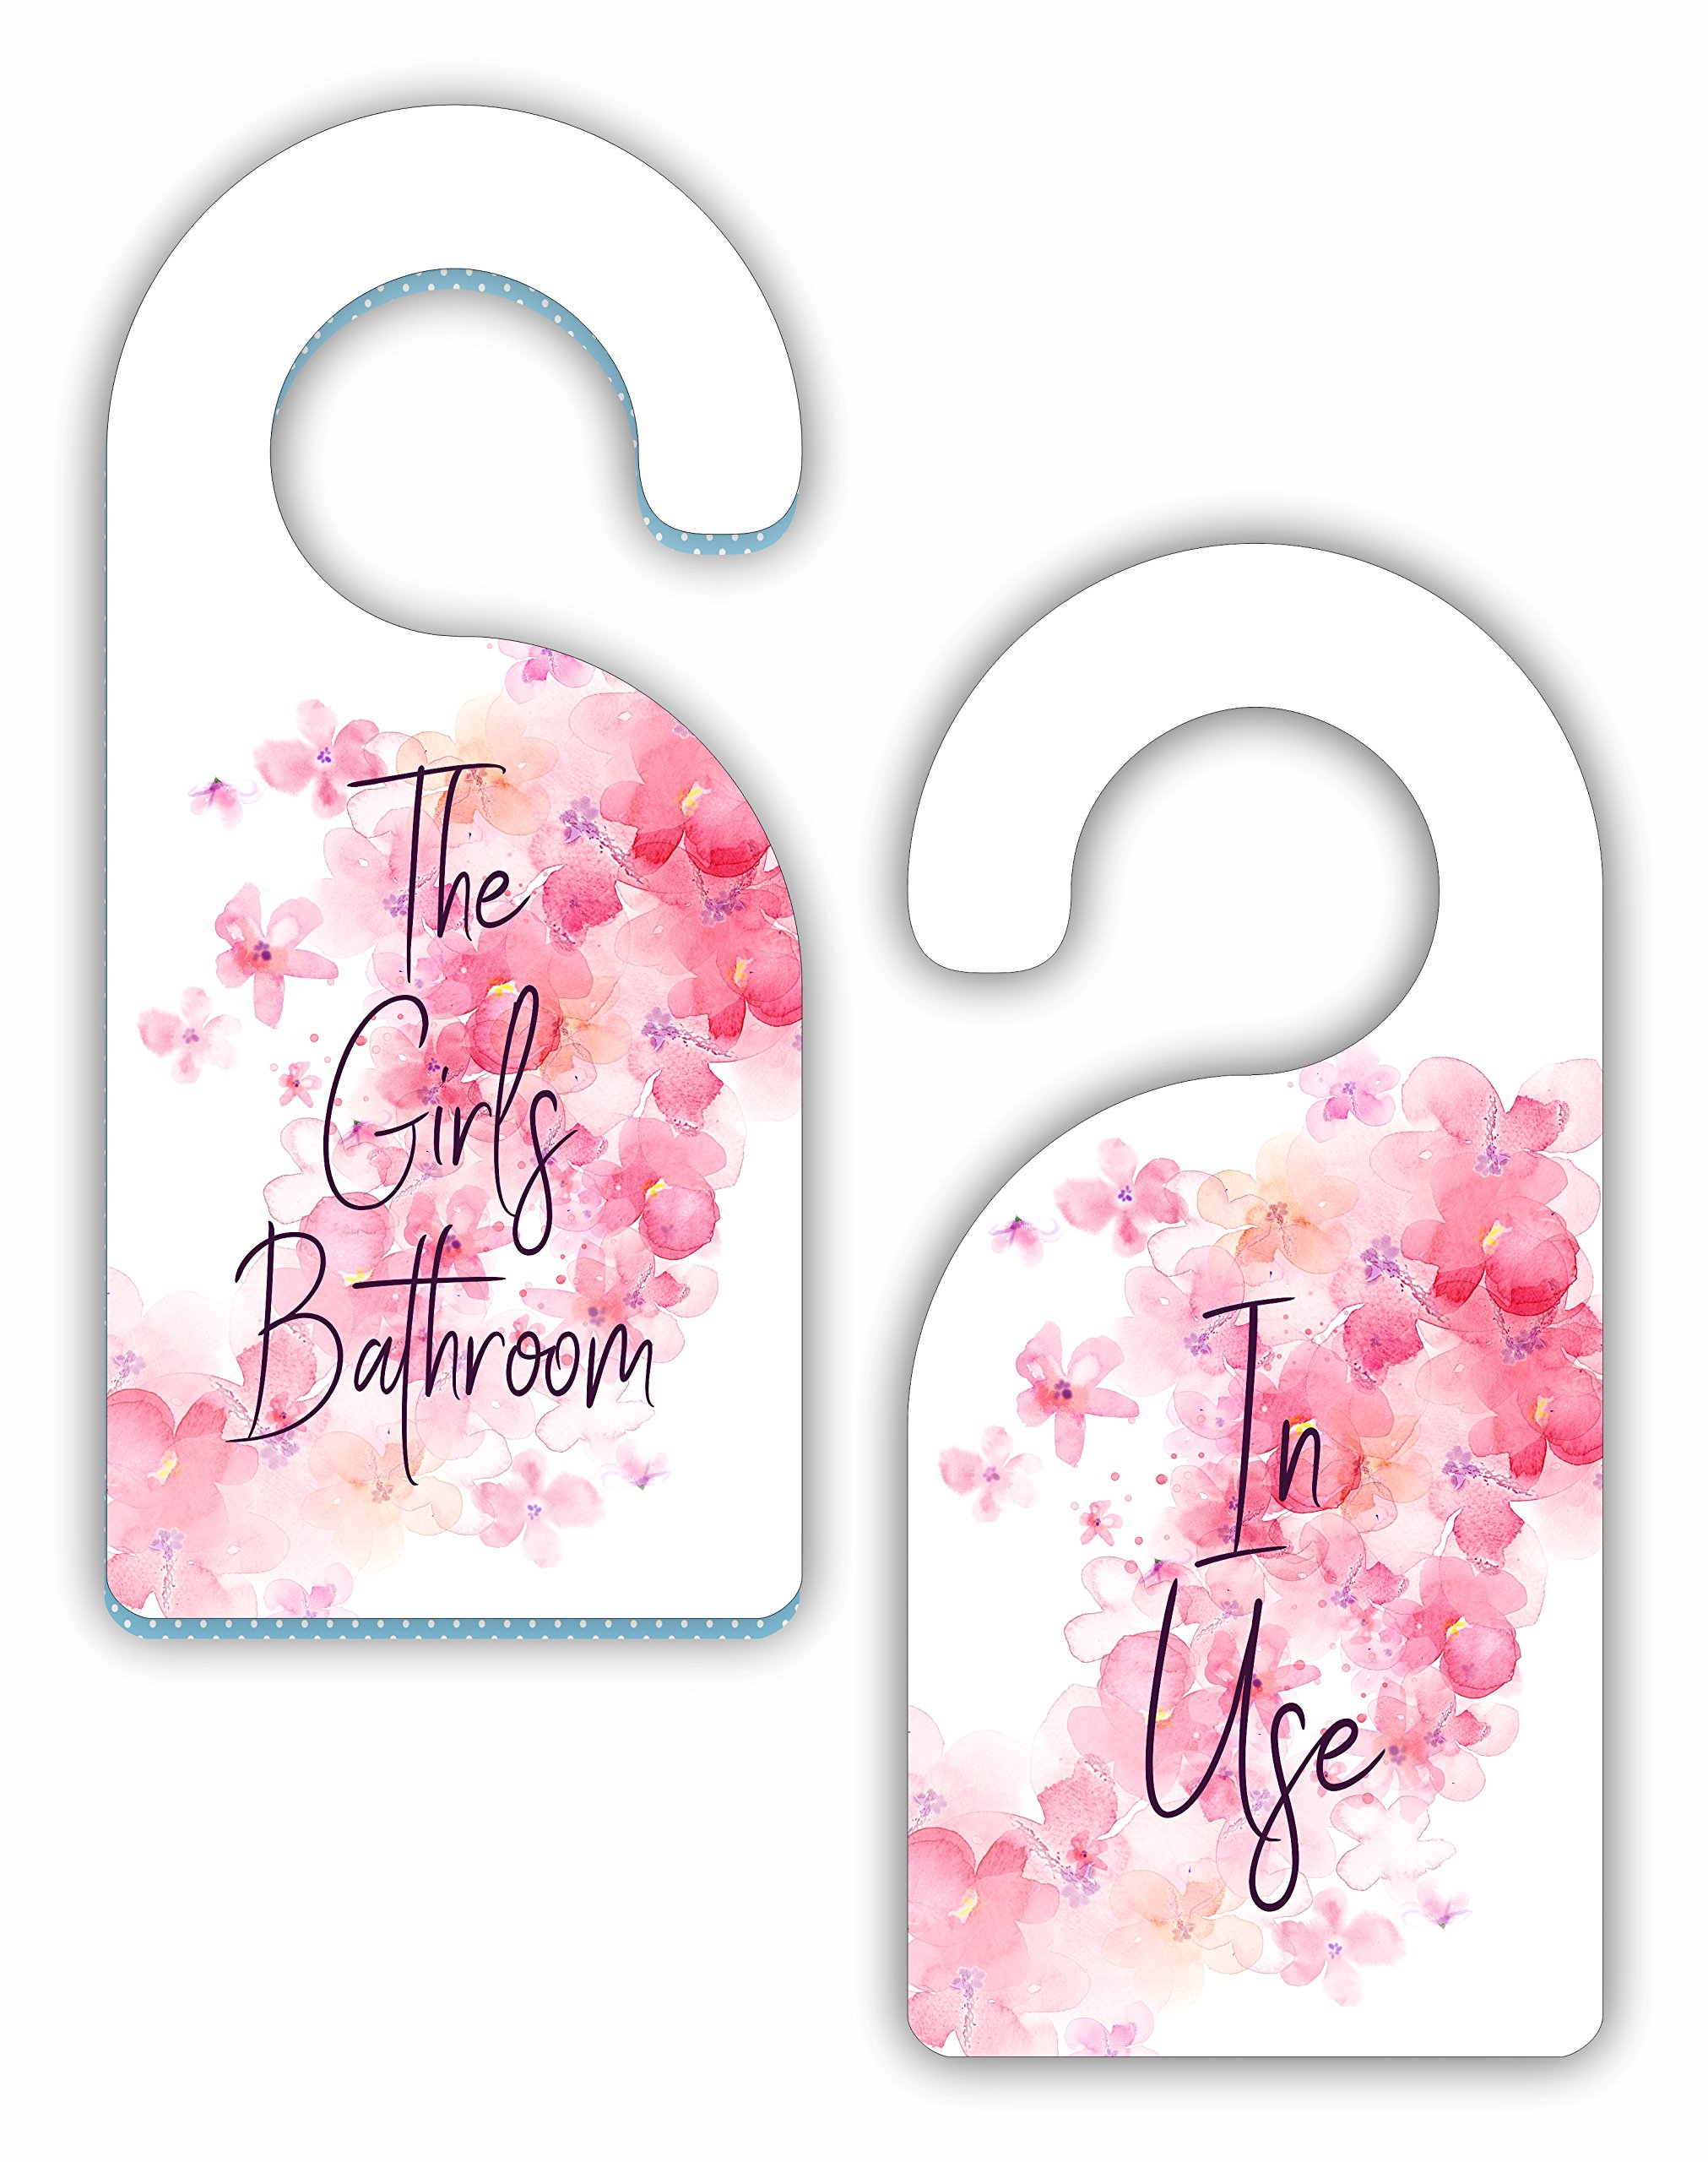 The Girls Bathroom - In Use - Watercolor Floral - Room Door Sign Hanger - Double Sided - Hard Plastic - Glossy Finish